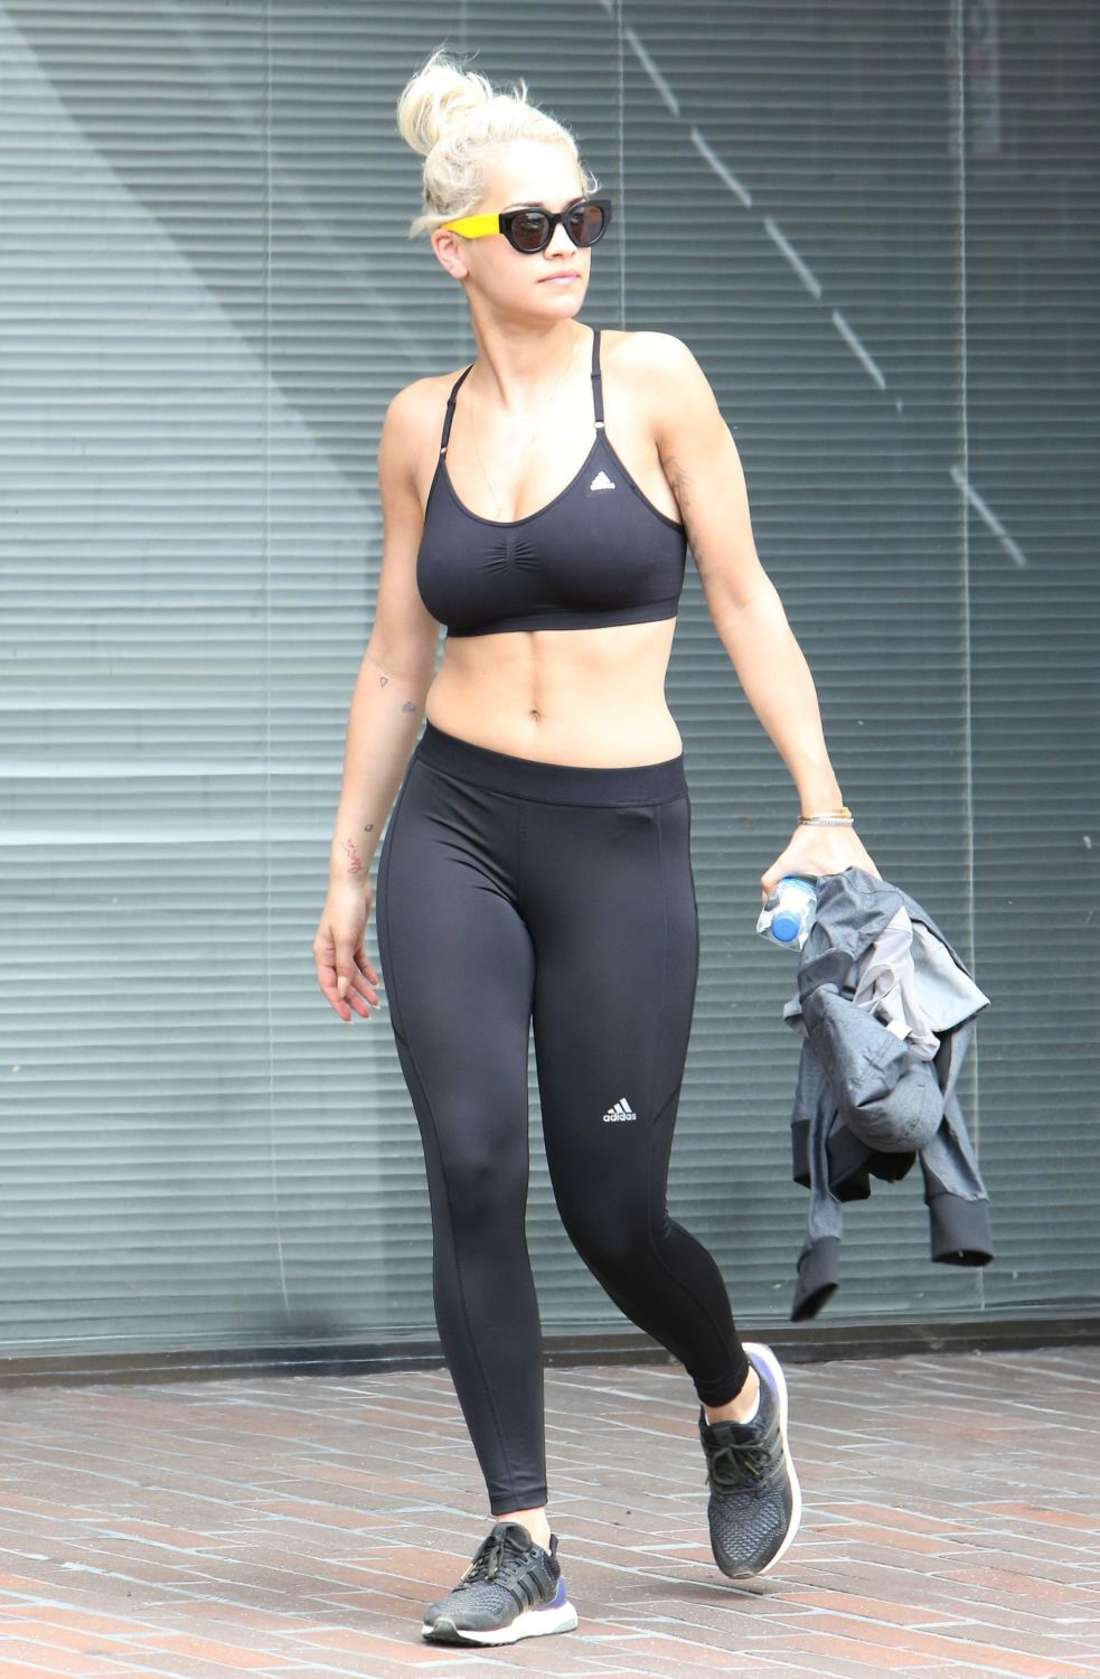 Rita Ora In Tights And Sports Bra 02 Gotceleb